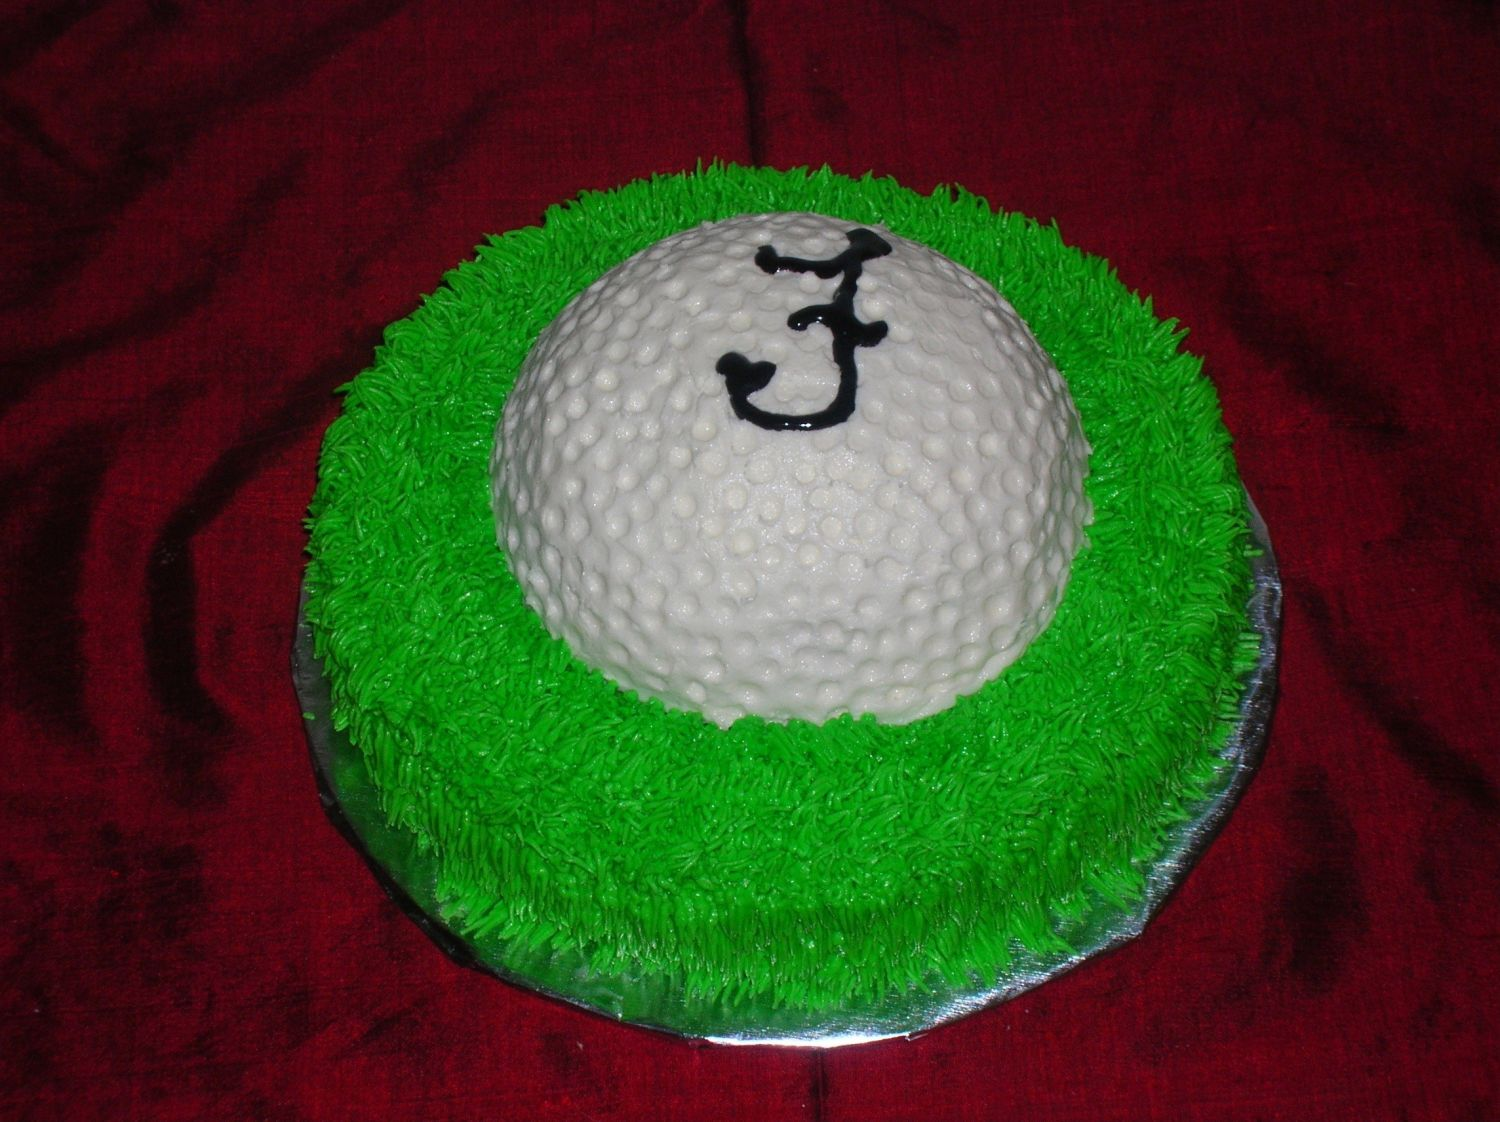 One half of sports ball cake on top of 9inch cake.  Lemon cake with lemon buttercream.